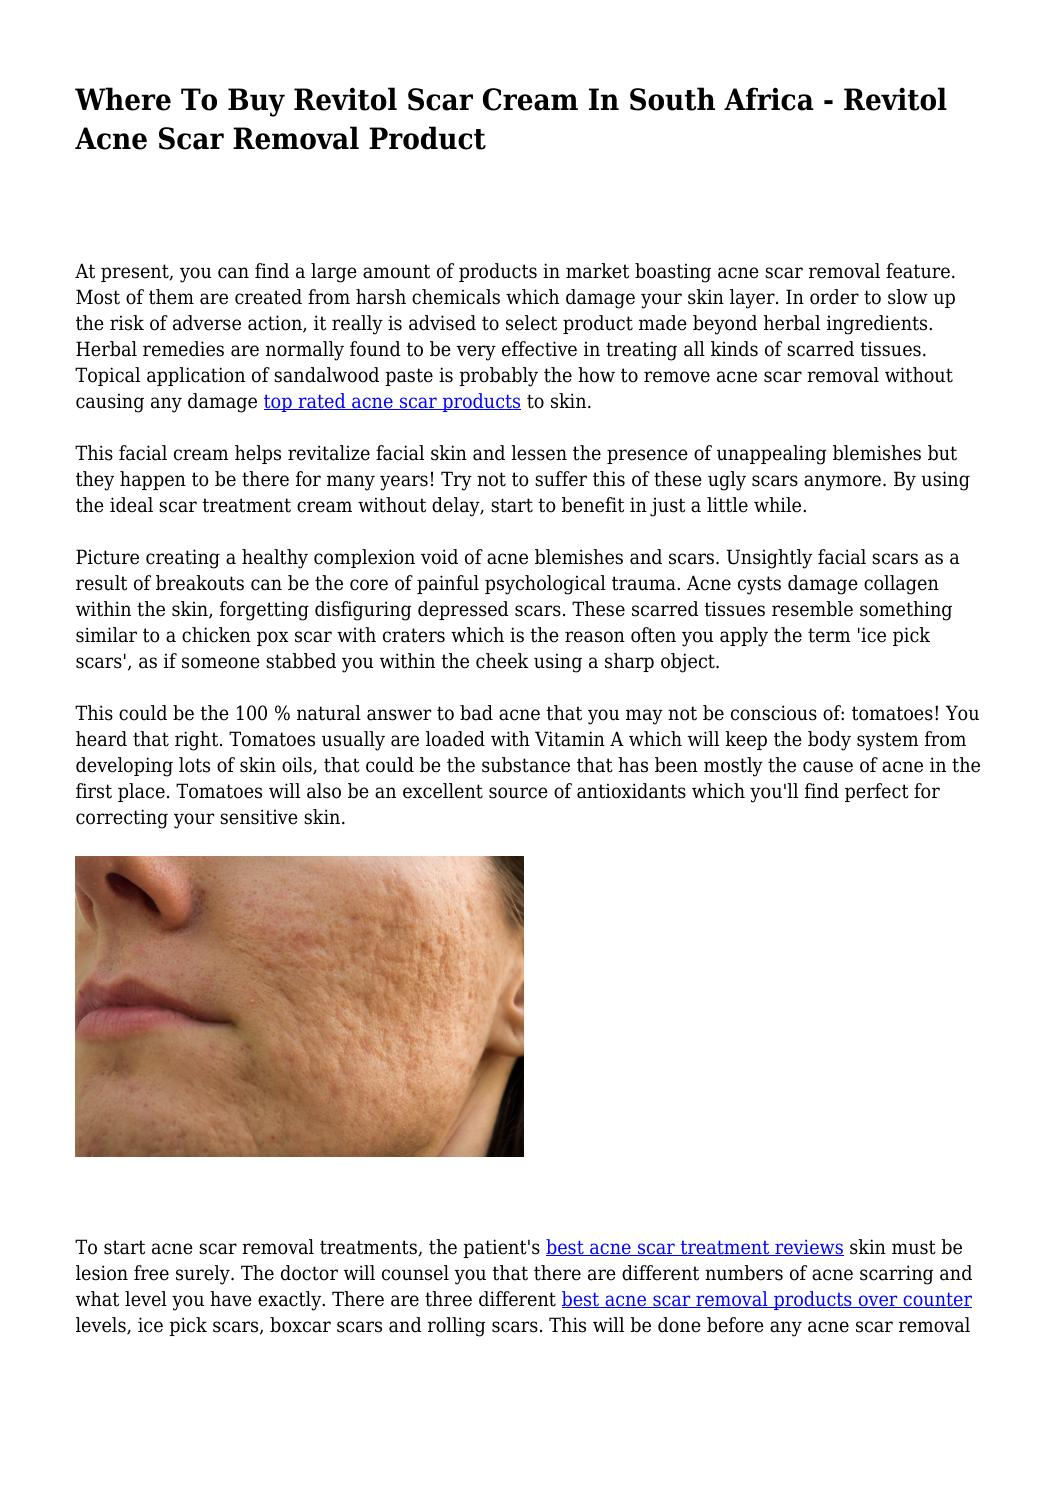 Where To Buy Revitol Scar Cream In South Africa Revitol Acne Scar